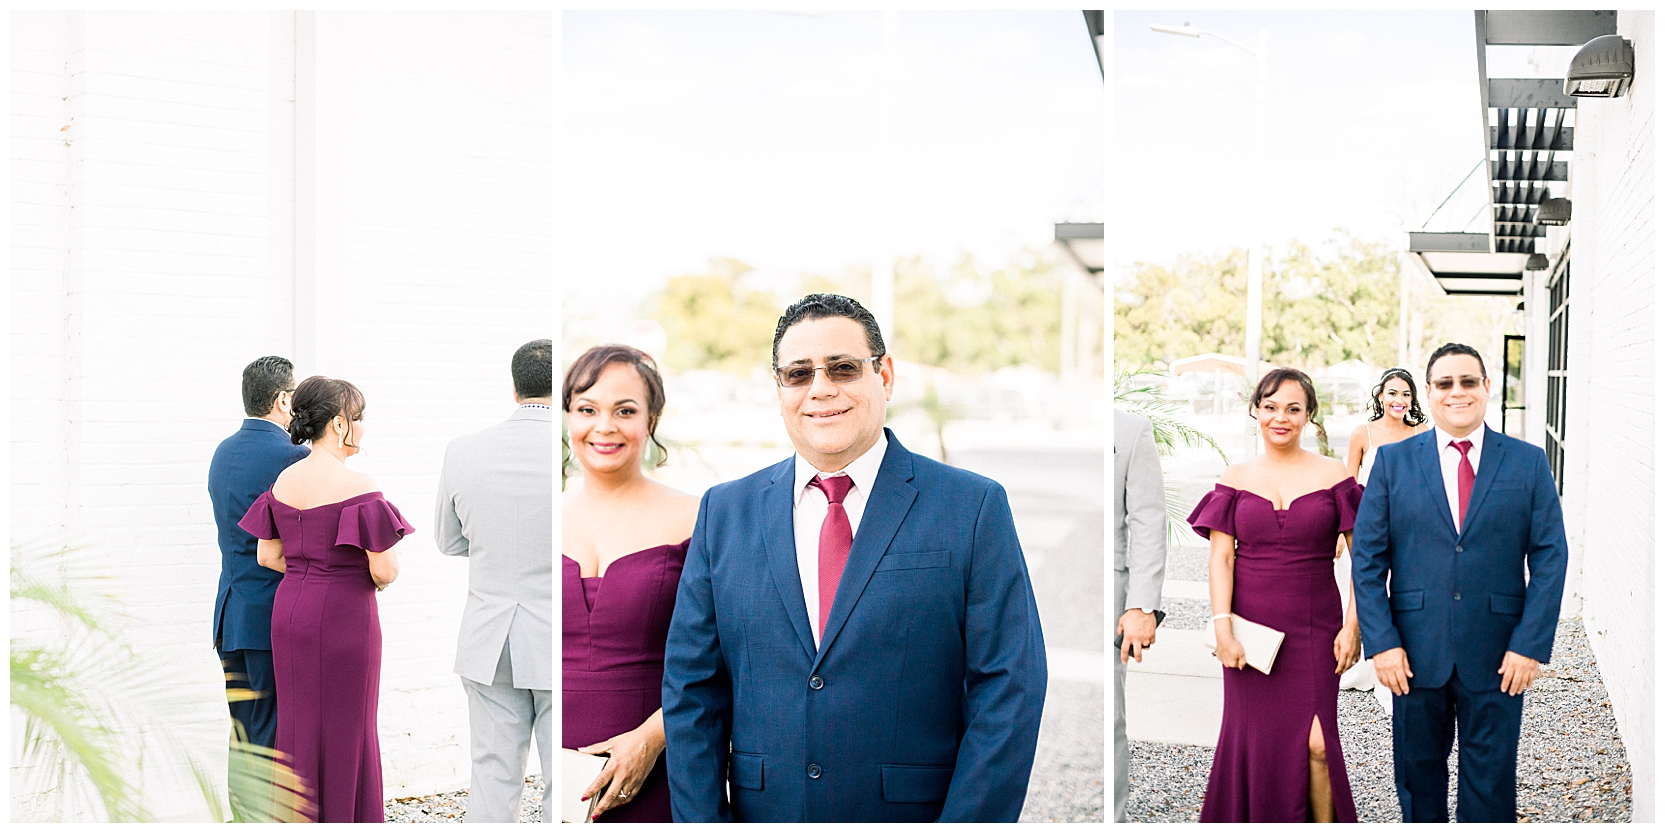 jessicafredericks_lakeland_tampa_wedding_purple_crazy hour_0036.jpg